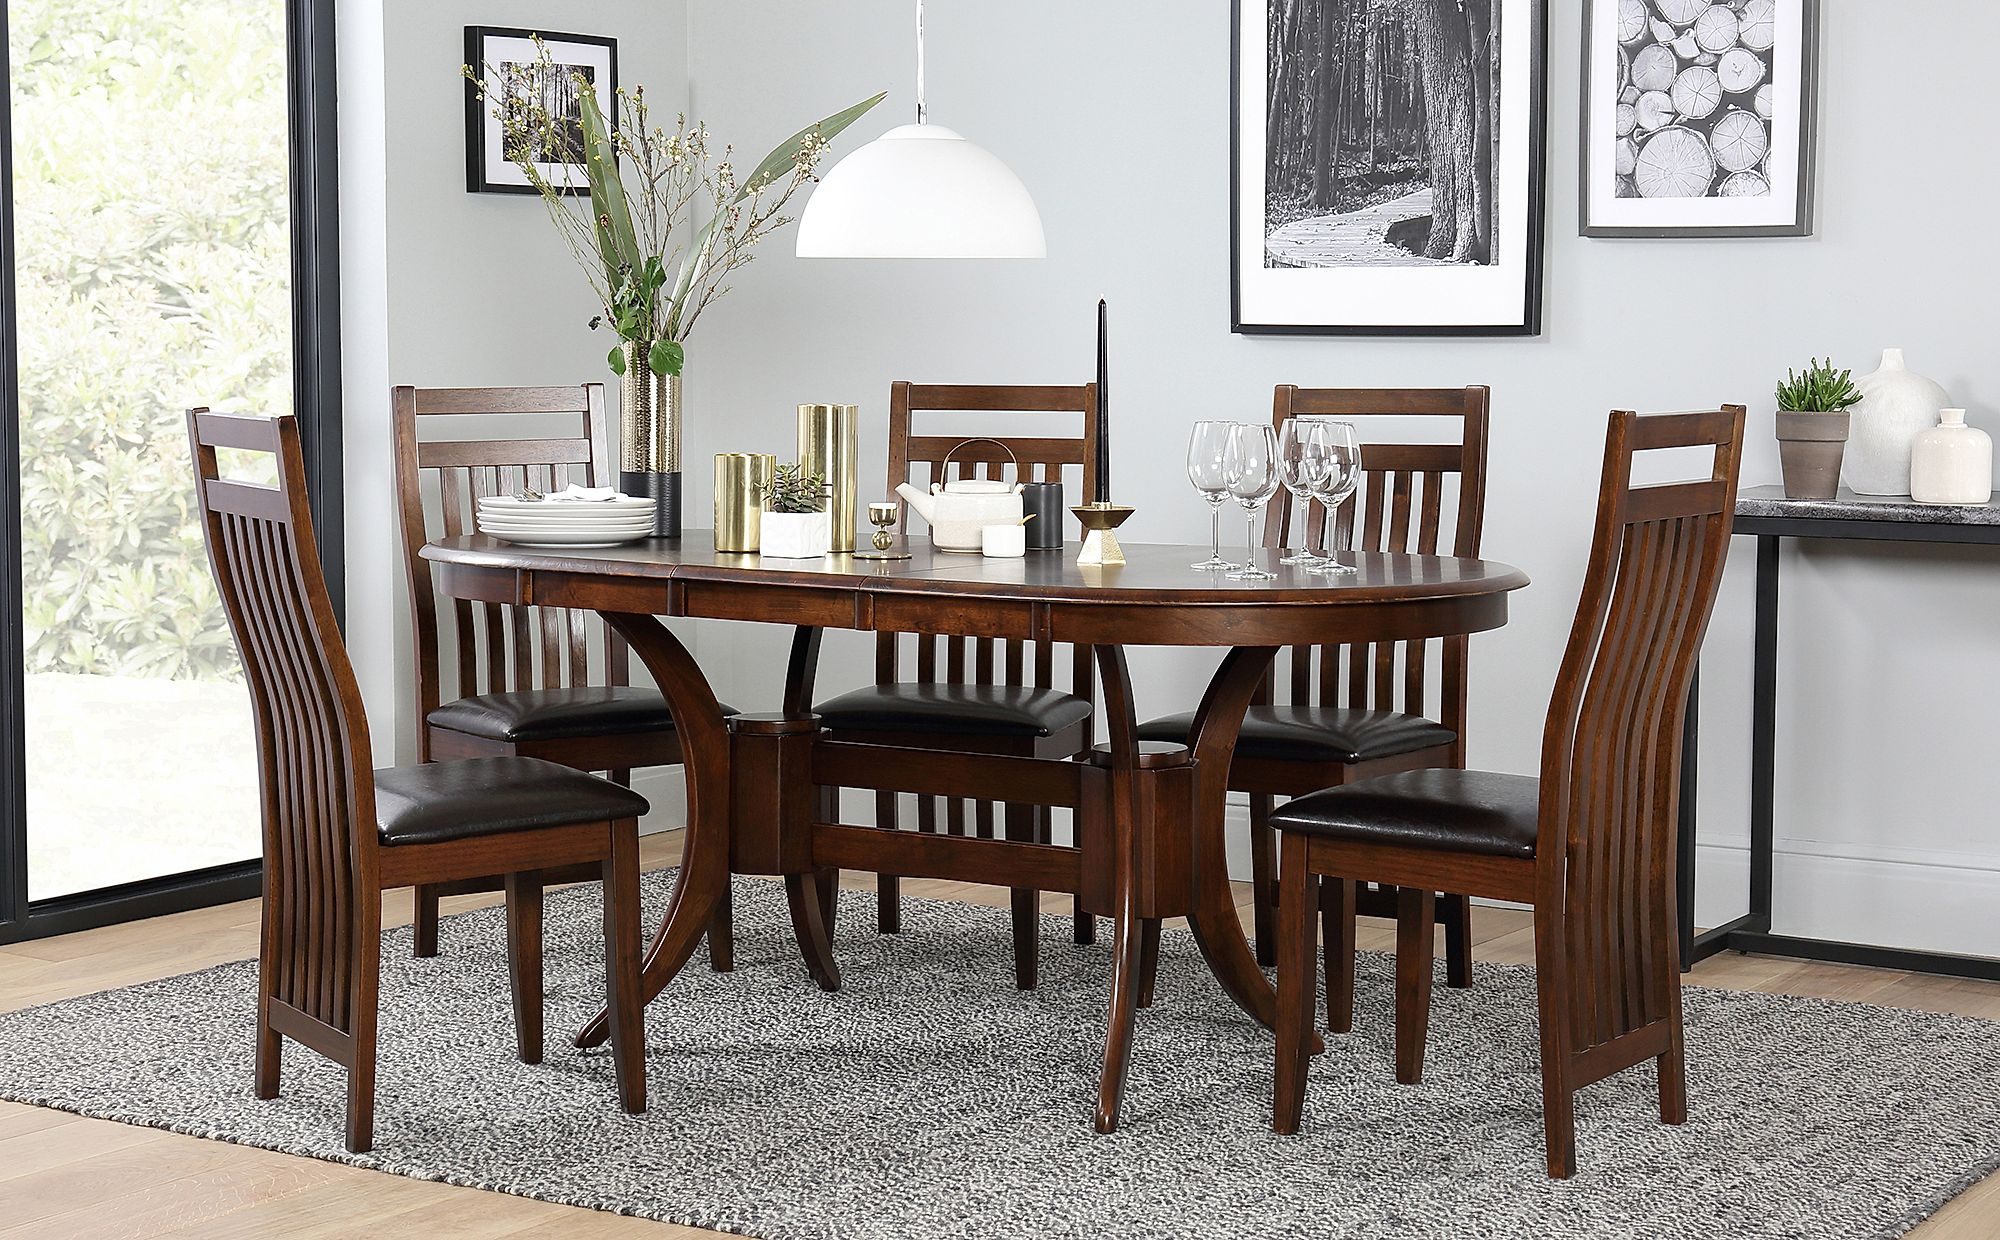 e52d62a49a Gallery. Townhouse Oval Extending Dark Wood Dining Table and 6 Java Chairs  Set